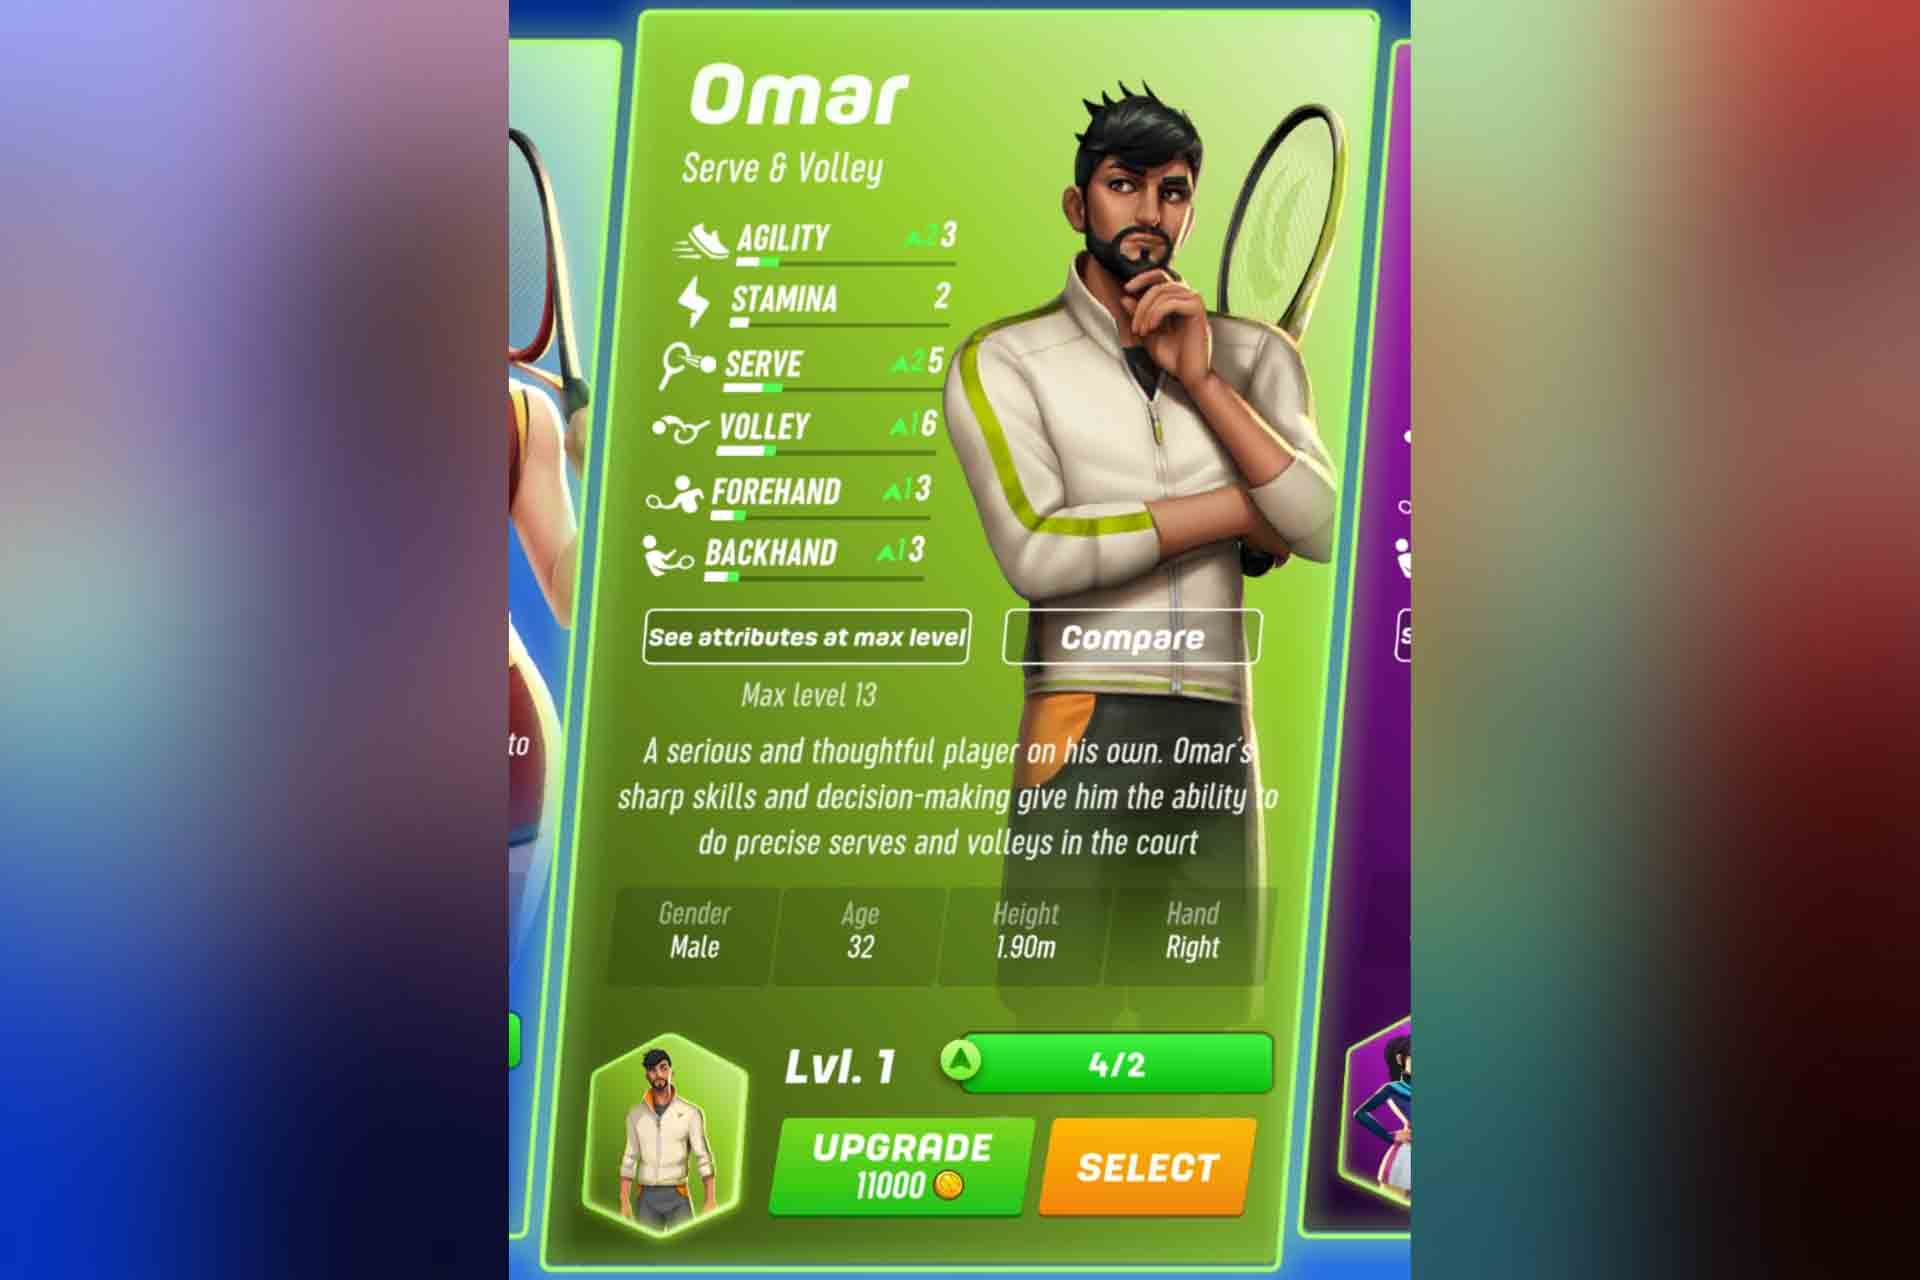 Omar is a character in Tennis clash. His serve and volley skills are his highlight. Omar is a serious and thoughtful player. His sharp skills and quick decision making give him the ability to do precise serves and volleys.